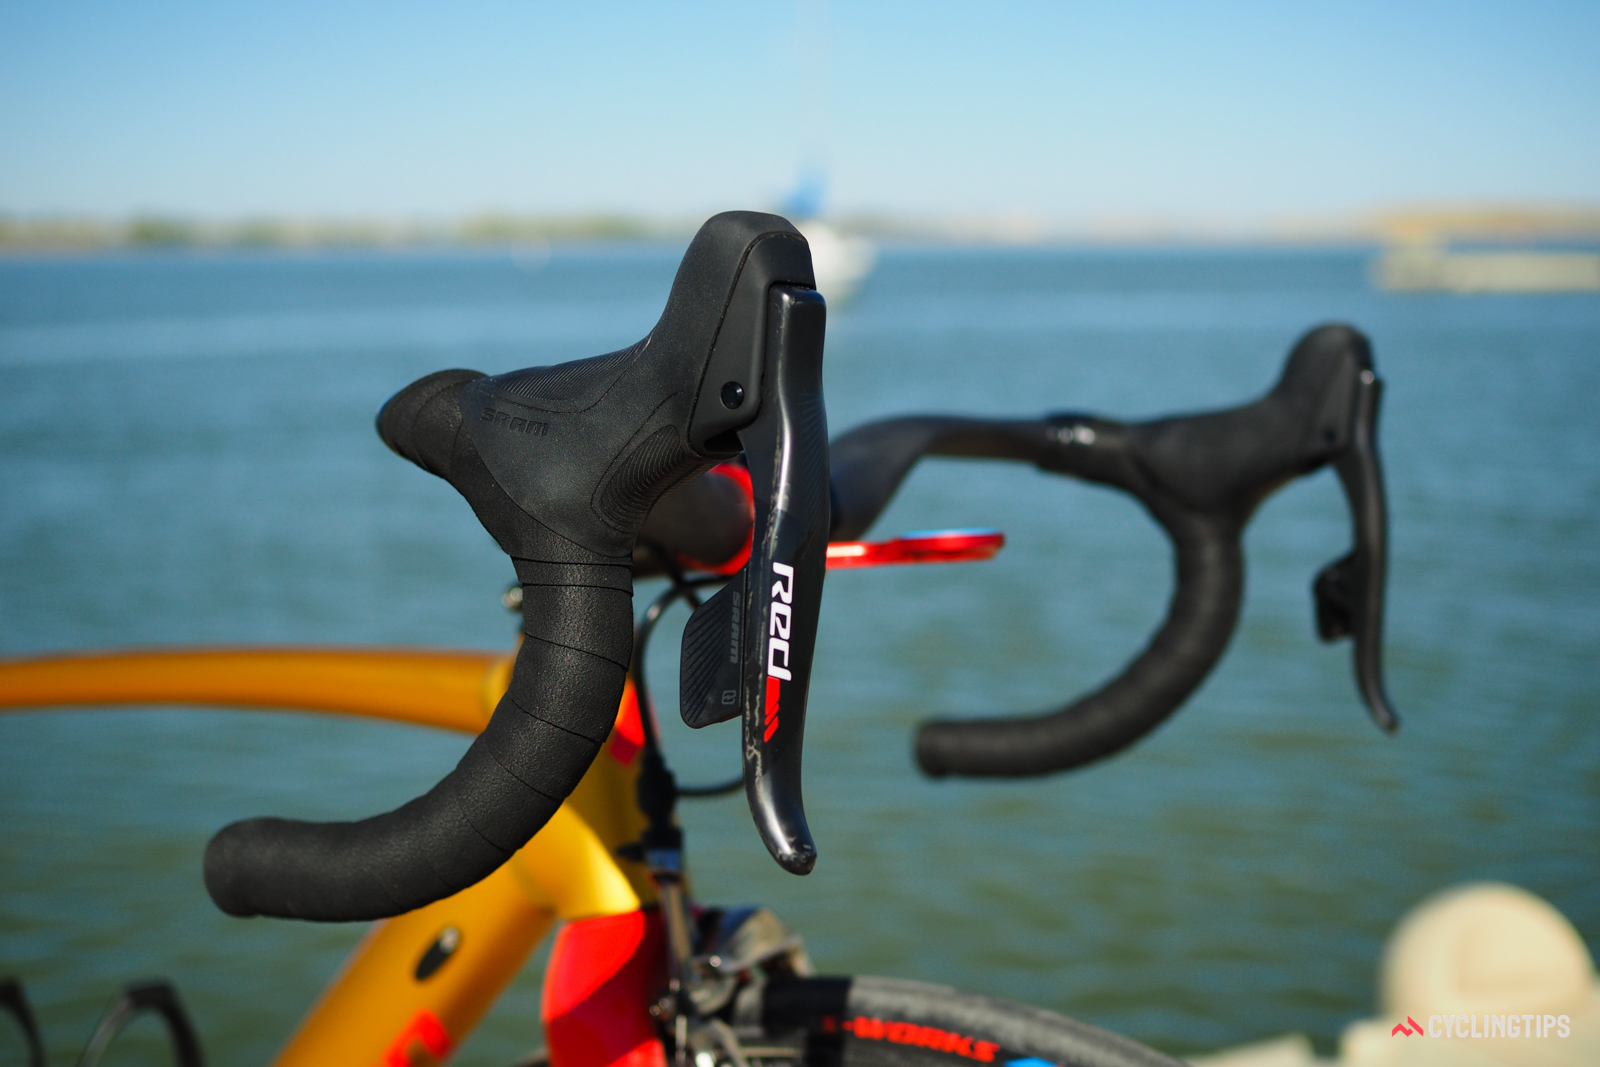 Specialized supplied CyclingTips with a custom-built version of its Allez DSW SL frameset, including a SRAM Red eTap wireless electronic groupset.